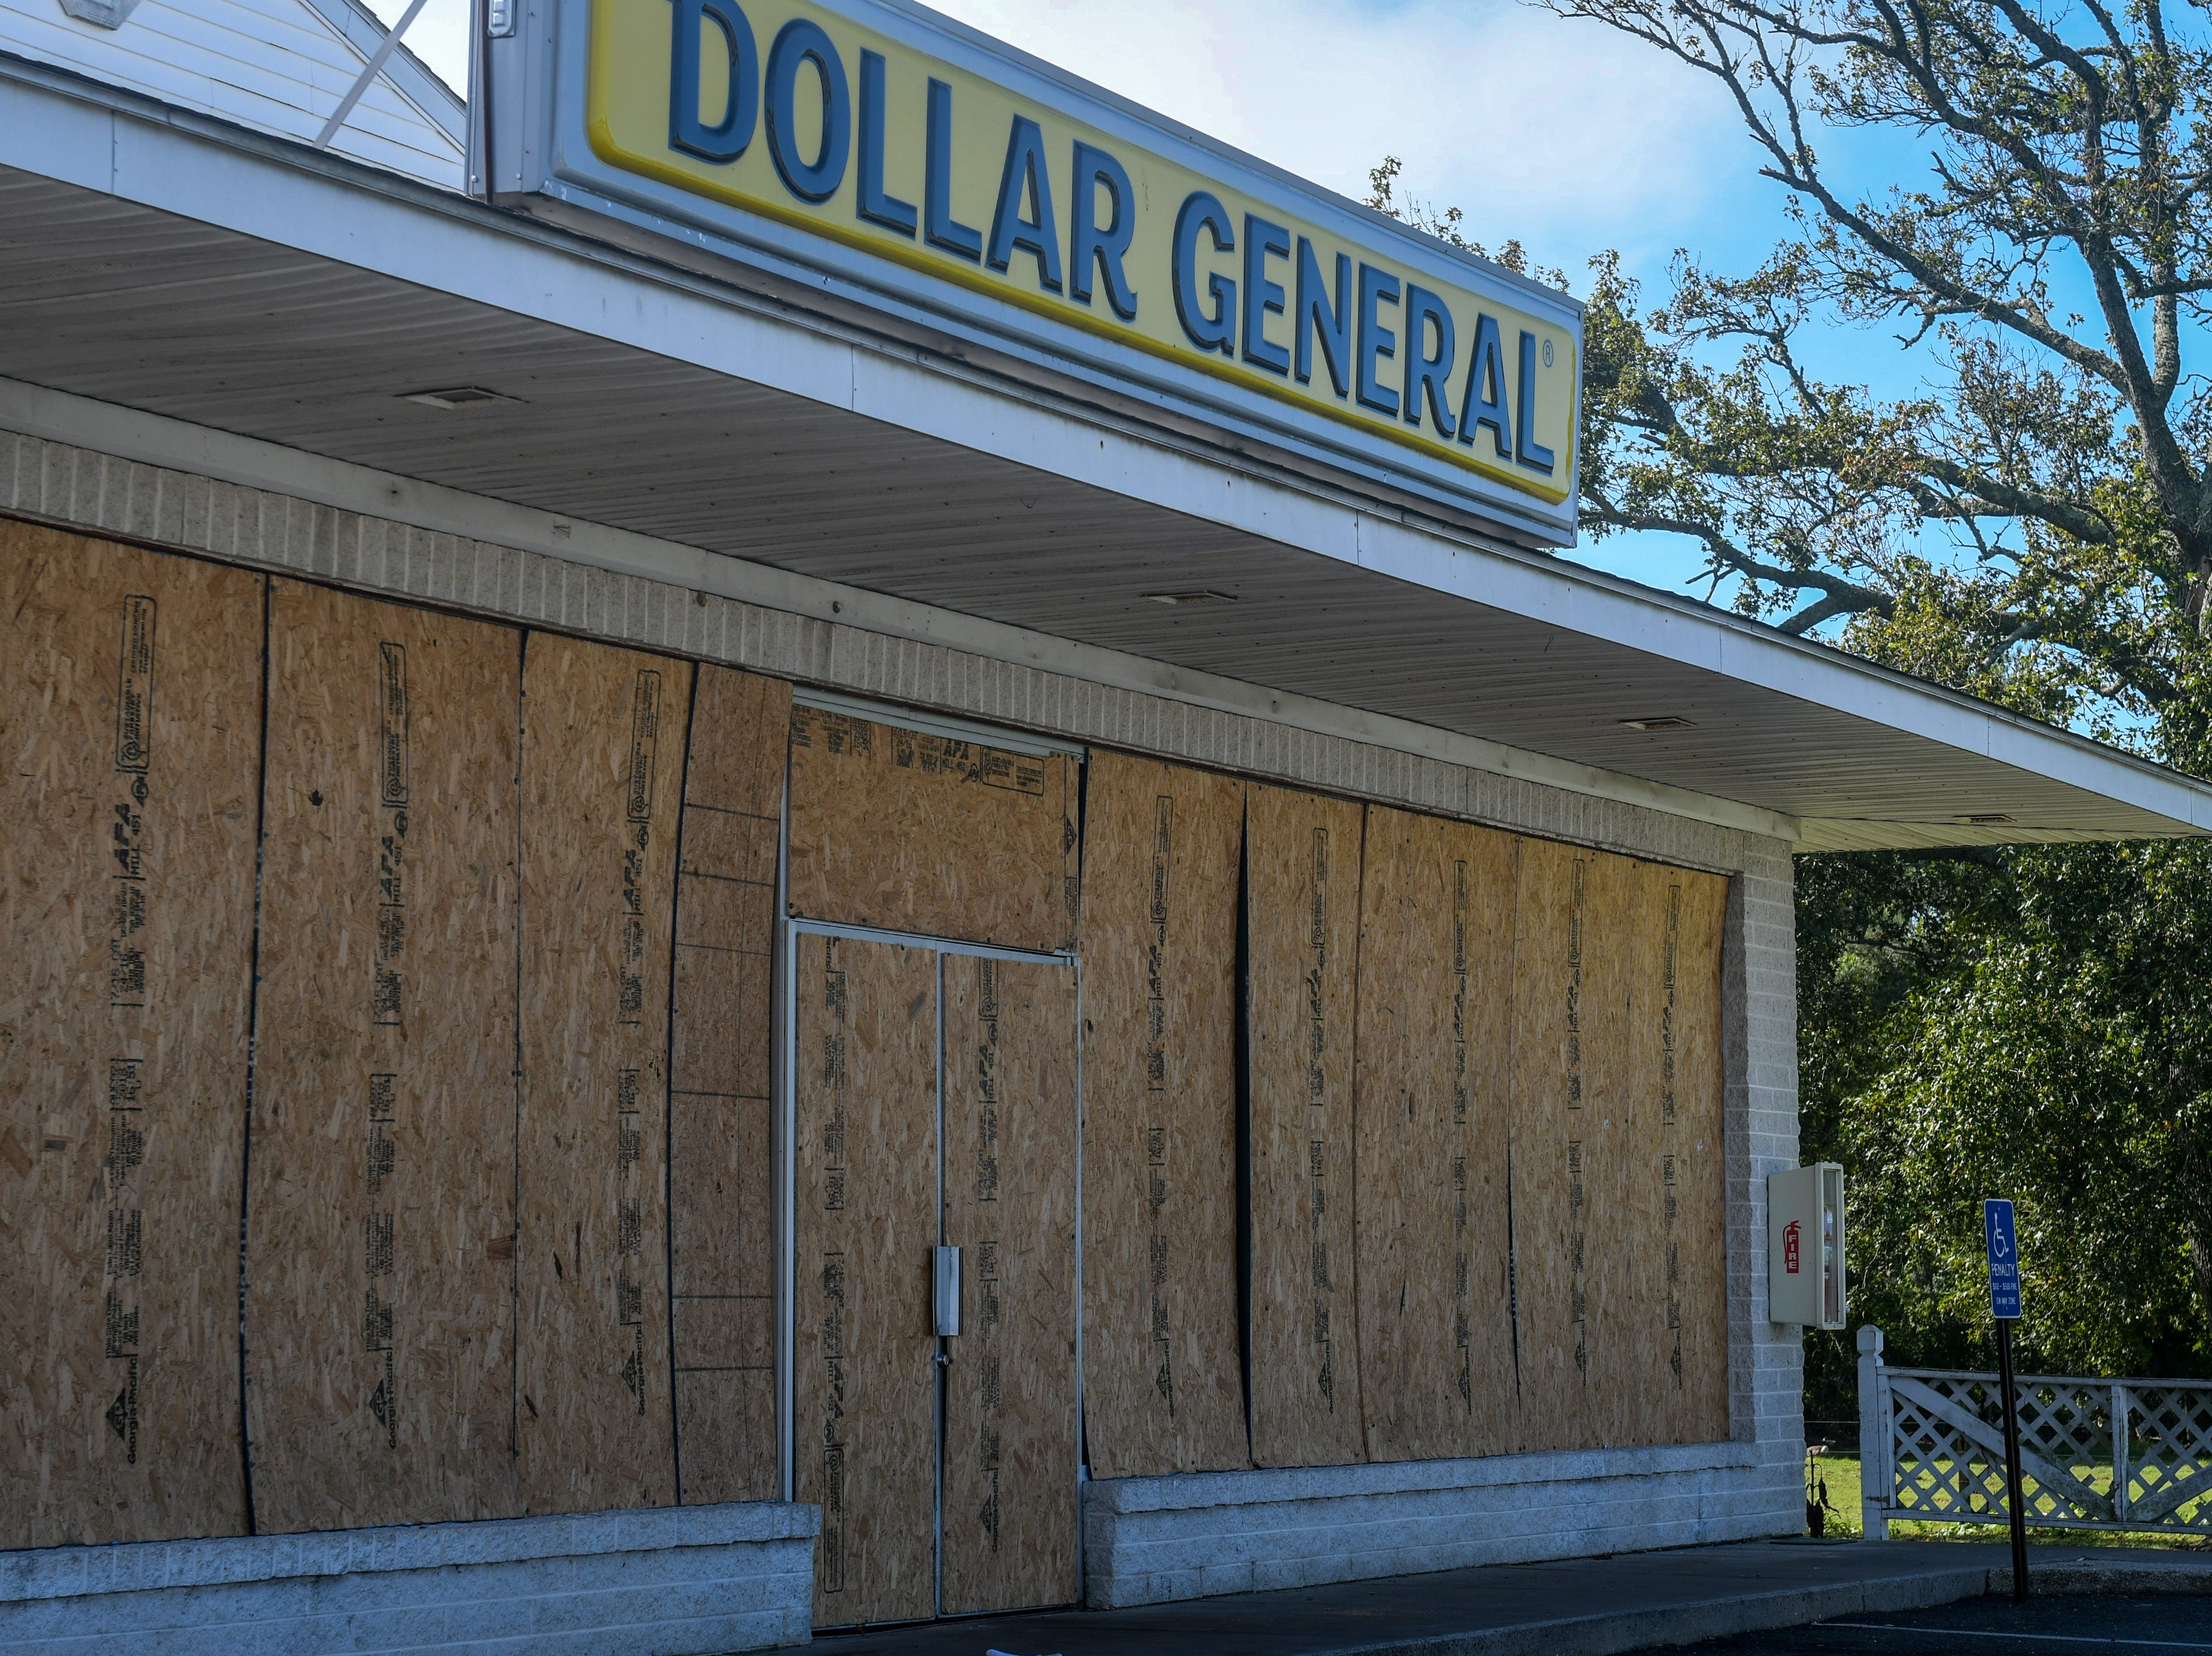 The Dollar General on Chincoteague Island is one of the few buildings that was already boarded up by Tuesday, Sept. 11. The island is part of the state's zone A evacuation that was issued in advance of Hurricane Florence, but local officials have not yet asked residents to leave.